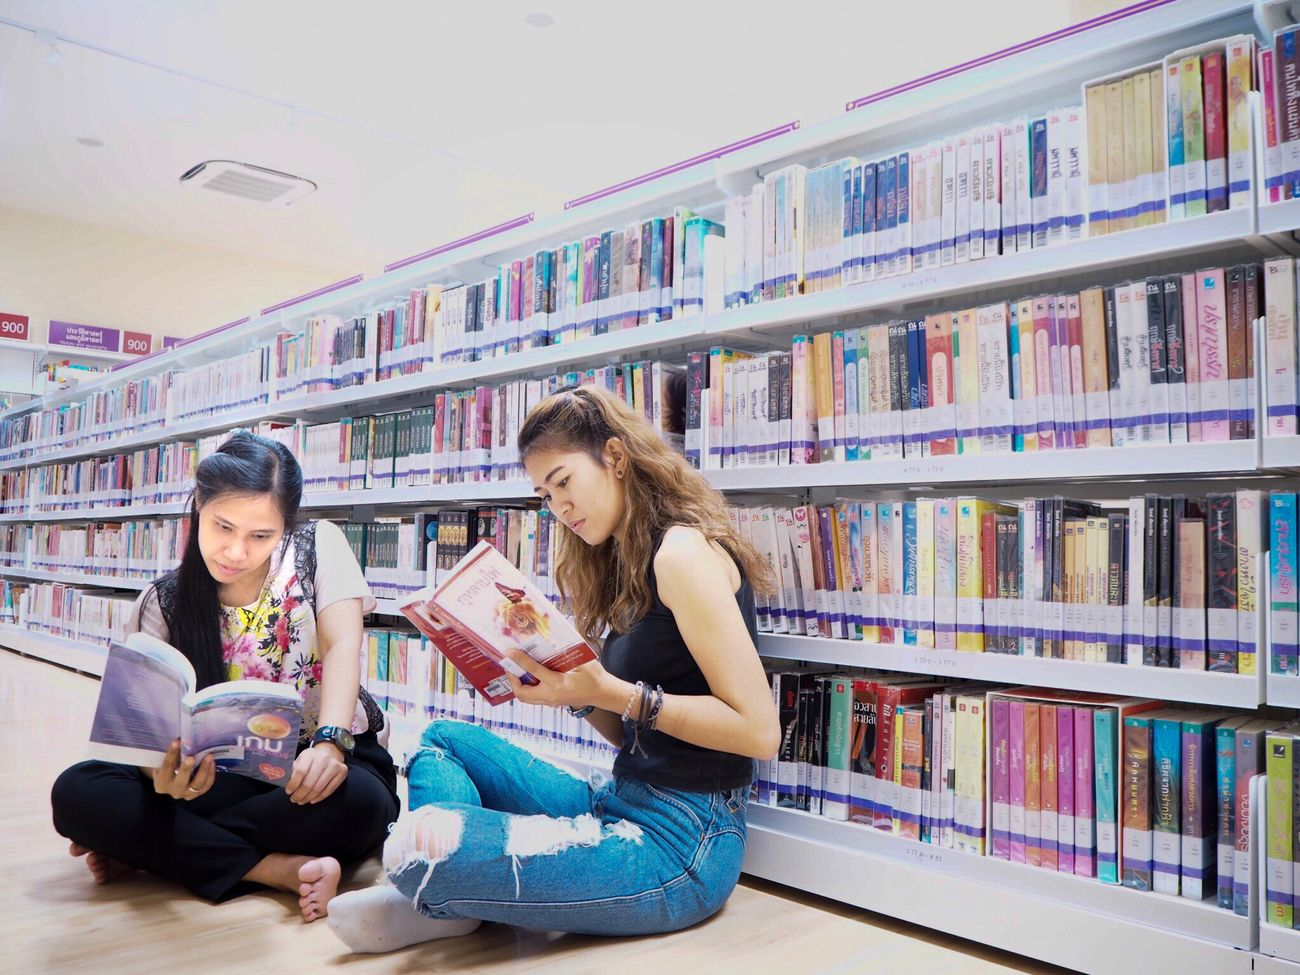 📕📗📘📙📔📒📓 Sitting Book Education Bookshelf Student Learning Indoors  University Student Library Togetherness Two People University Casual Clothing Young Adult Cross-legged Young Women Wireless Technology Holding Full Length Only Women